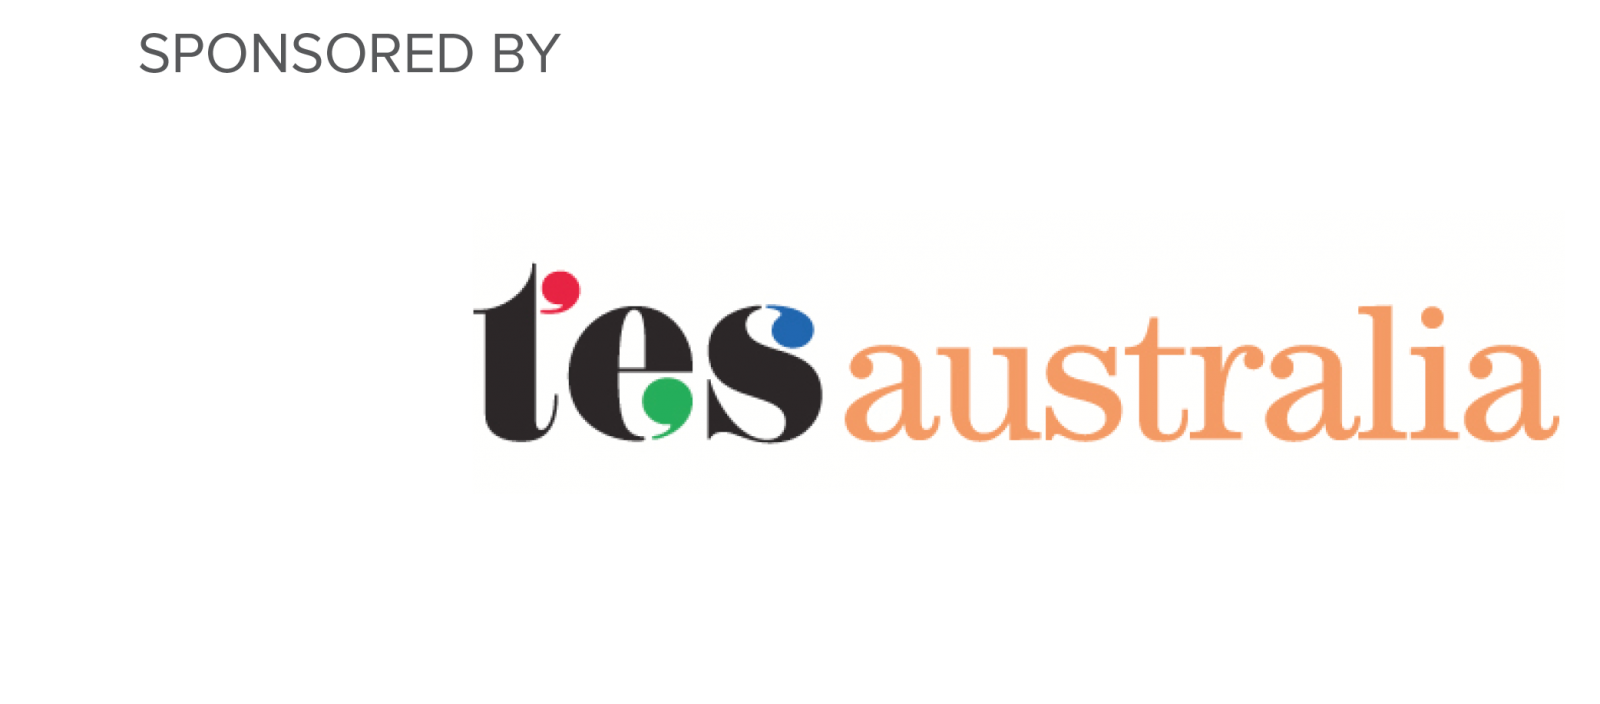 Sponsored by TES Australia